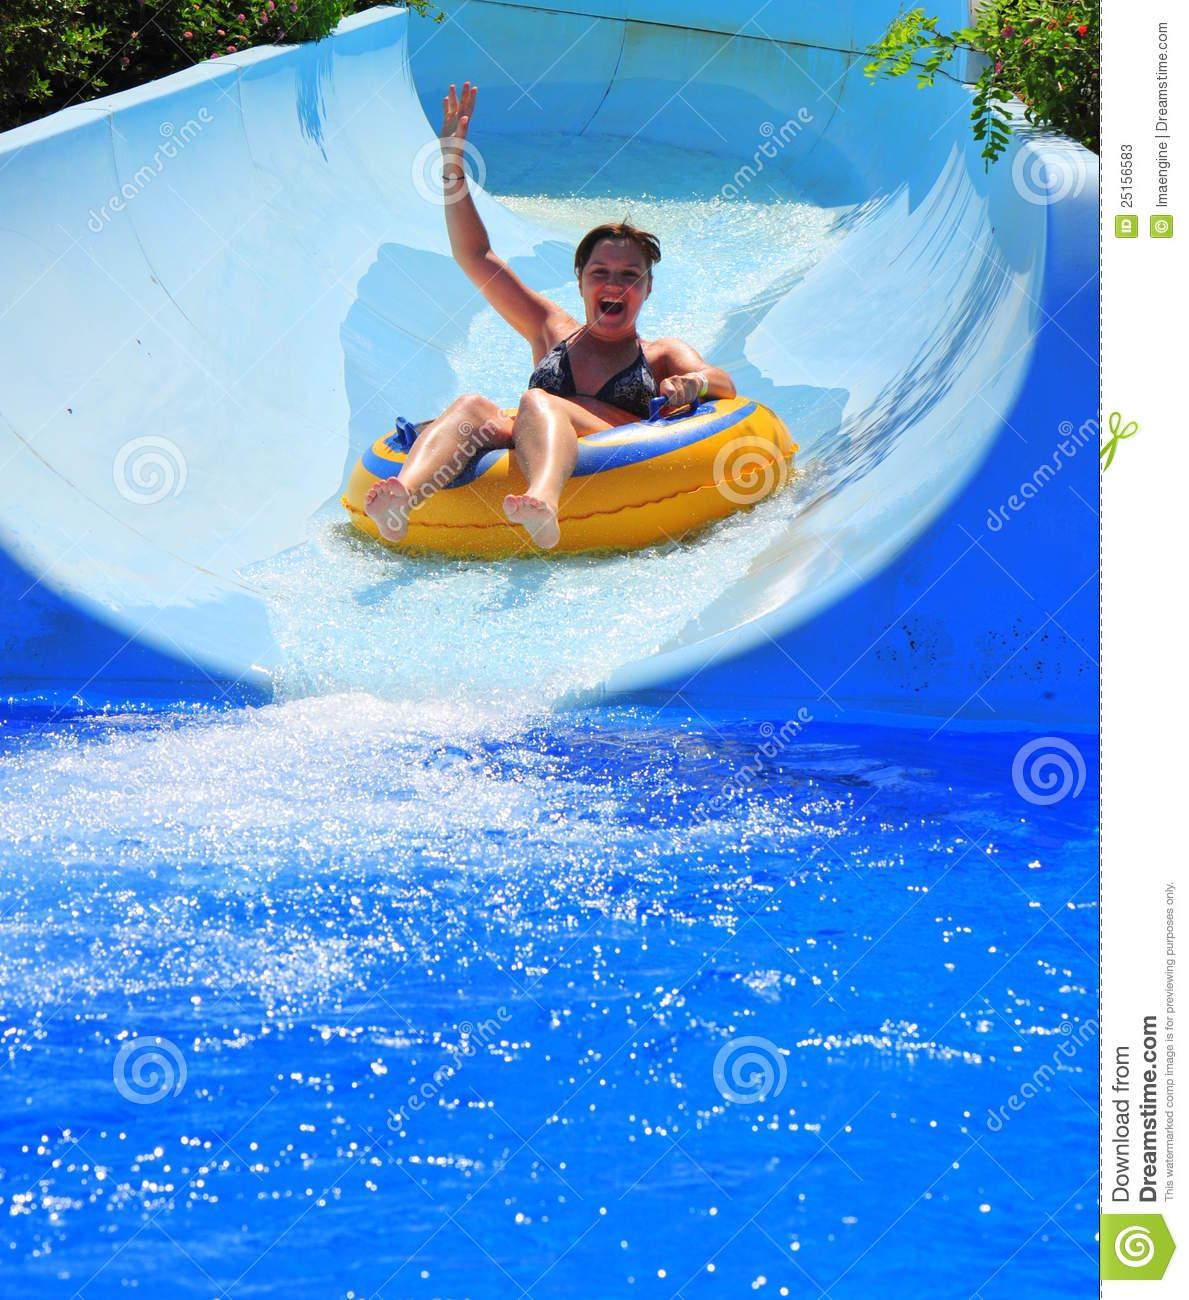 Aqua Park Fun Woman Enjoying A Water Slide Stock Photos Image 25156583